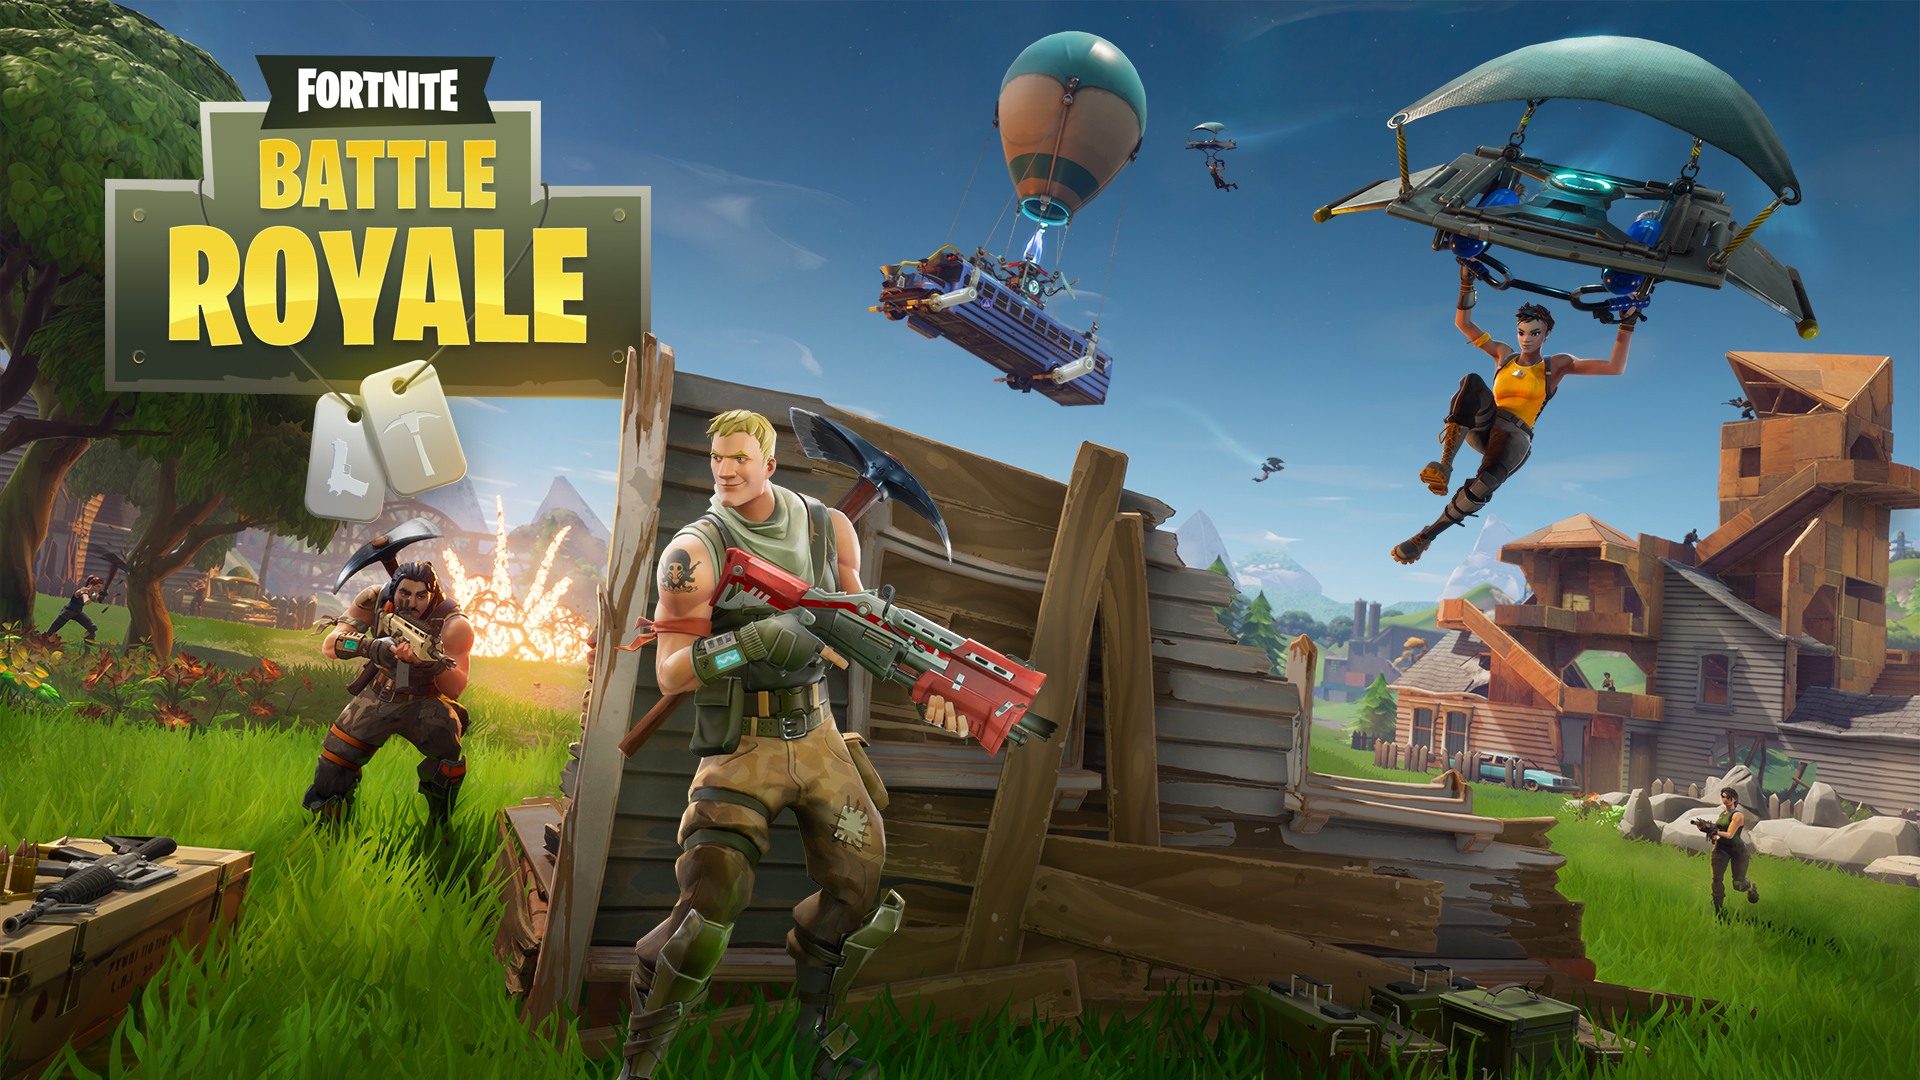 Photo of 14-year-old Cheater Sued by Epic Games for Using Aimbot Software, Mother Responds